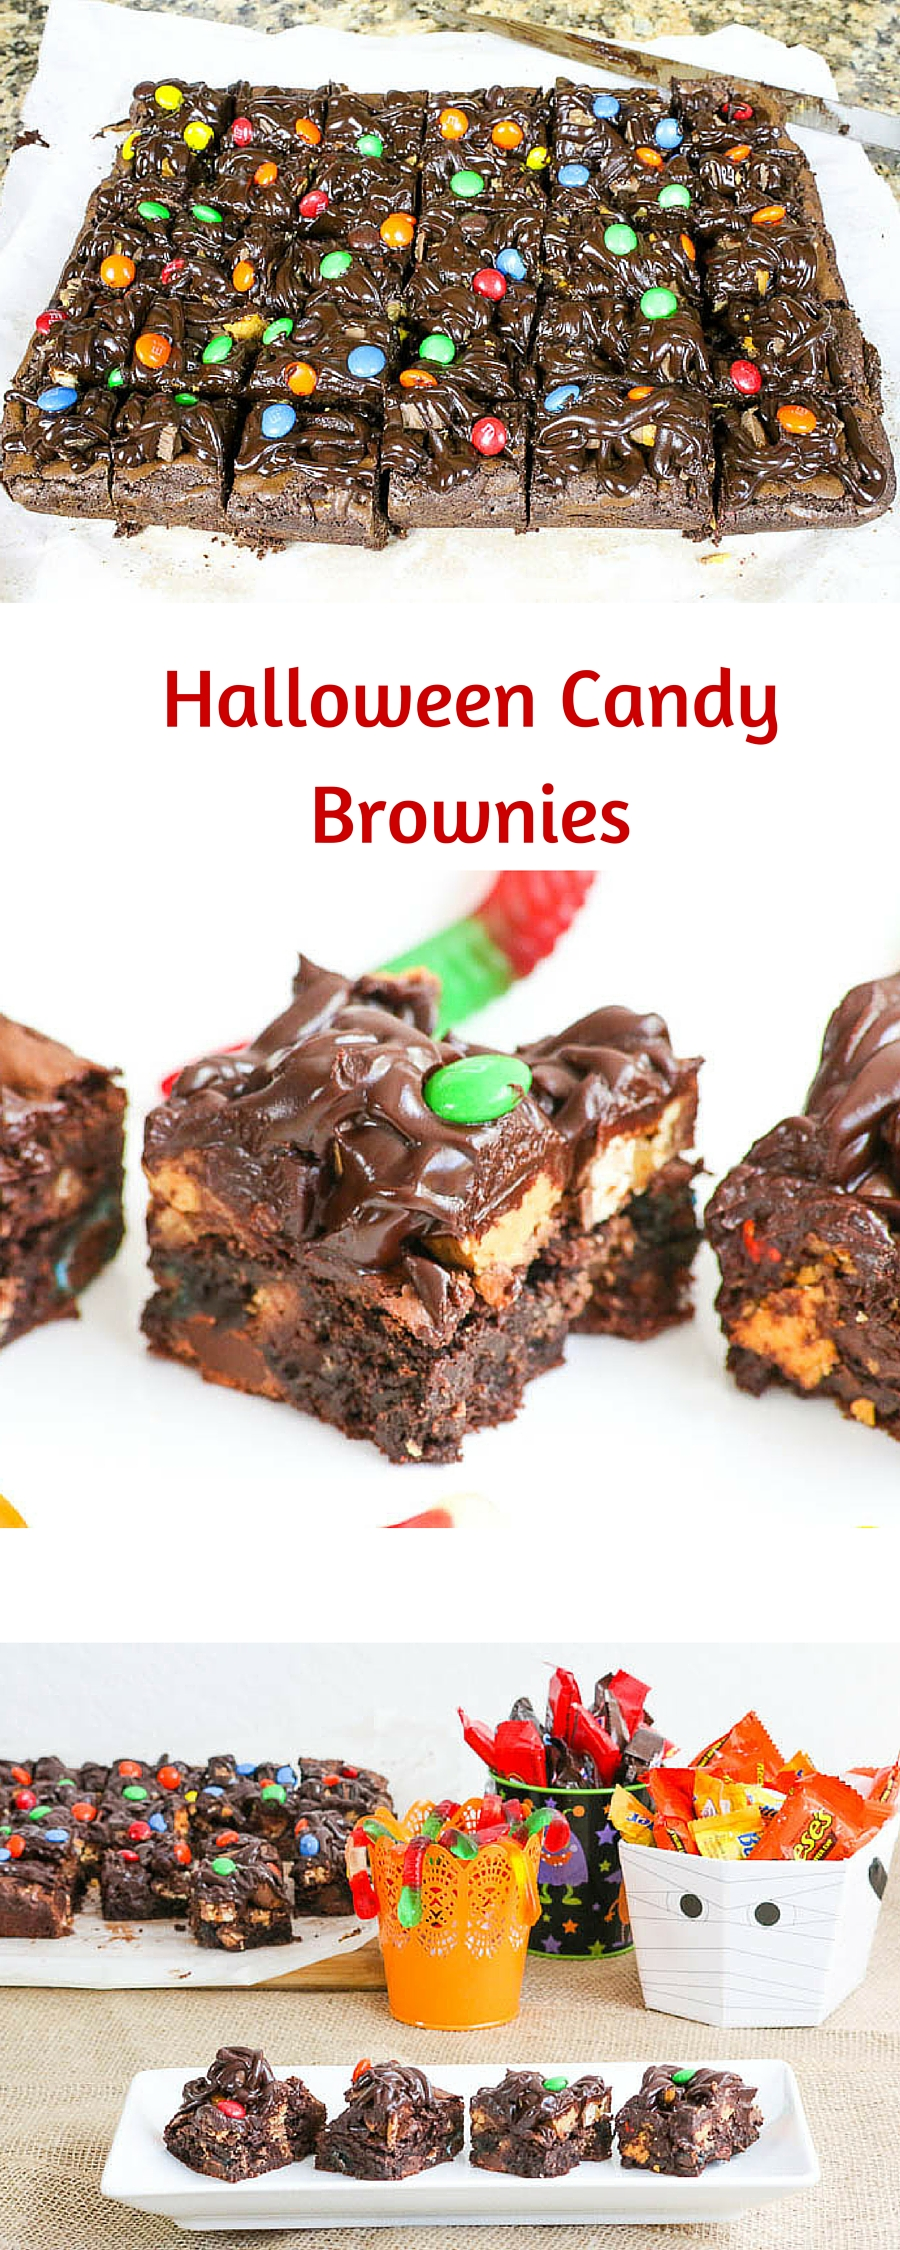 Halloween Candy Brownies uses your leftover candy in the sweetest possible way. You choose the combination and the recipe does the rest. A yummy dessert. #SundaySupper @DixieCrystals